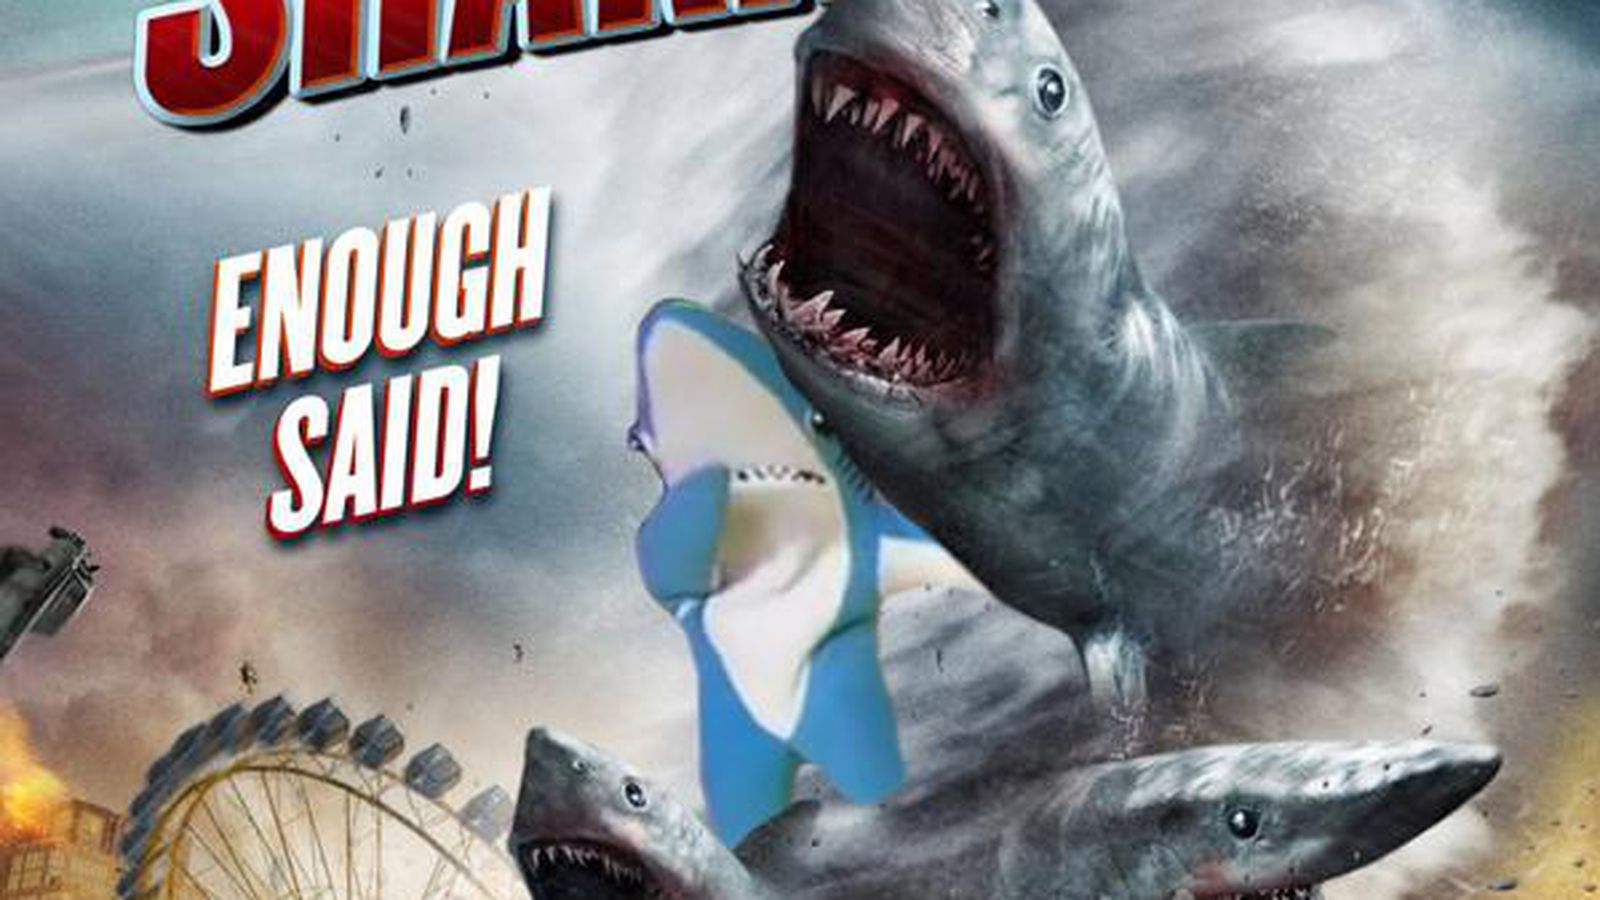 These Left Shark memes will make you love Left Shark even